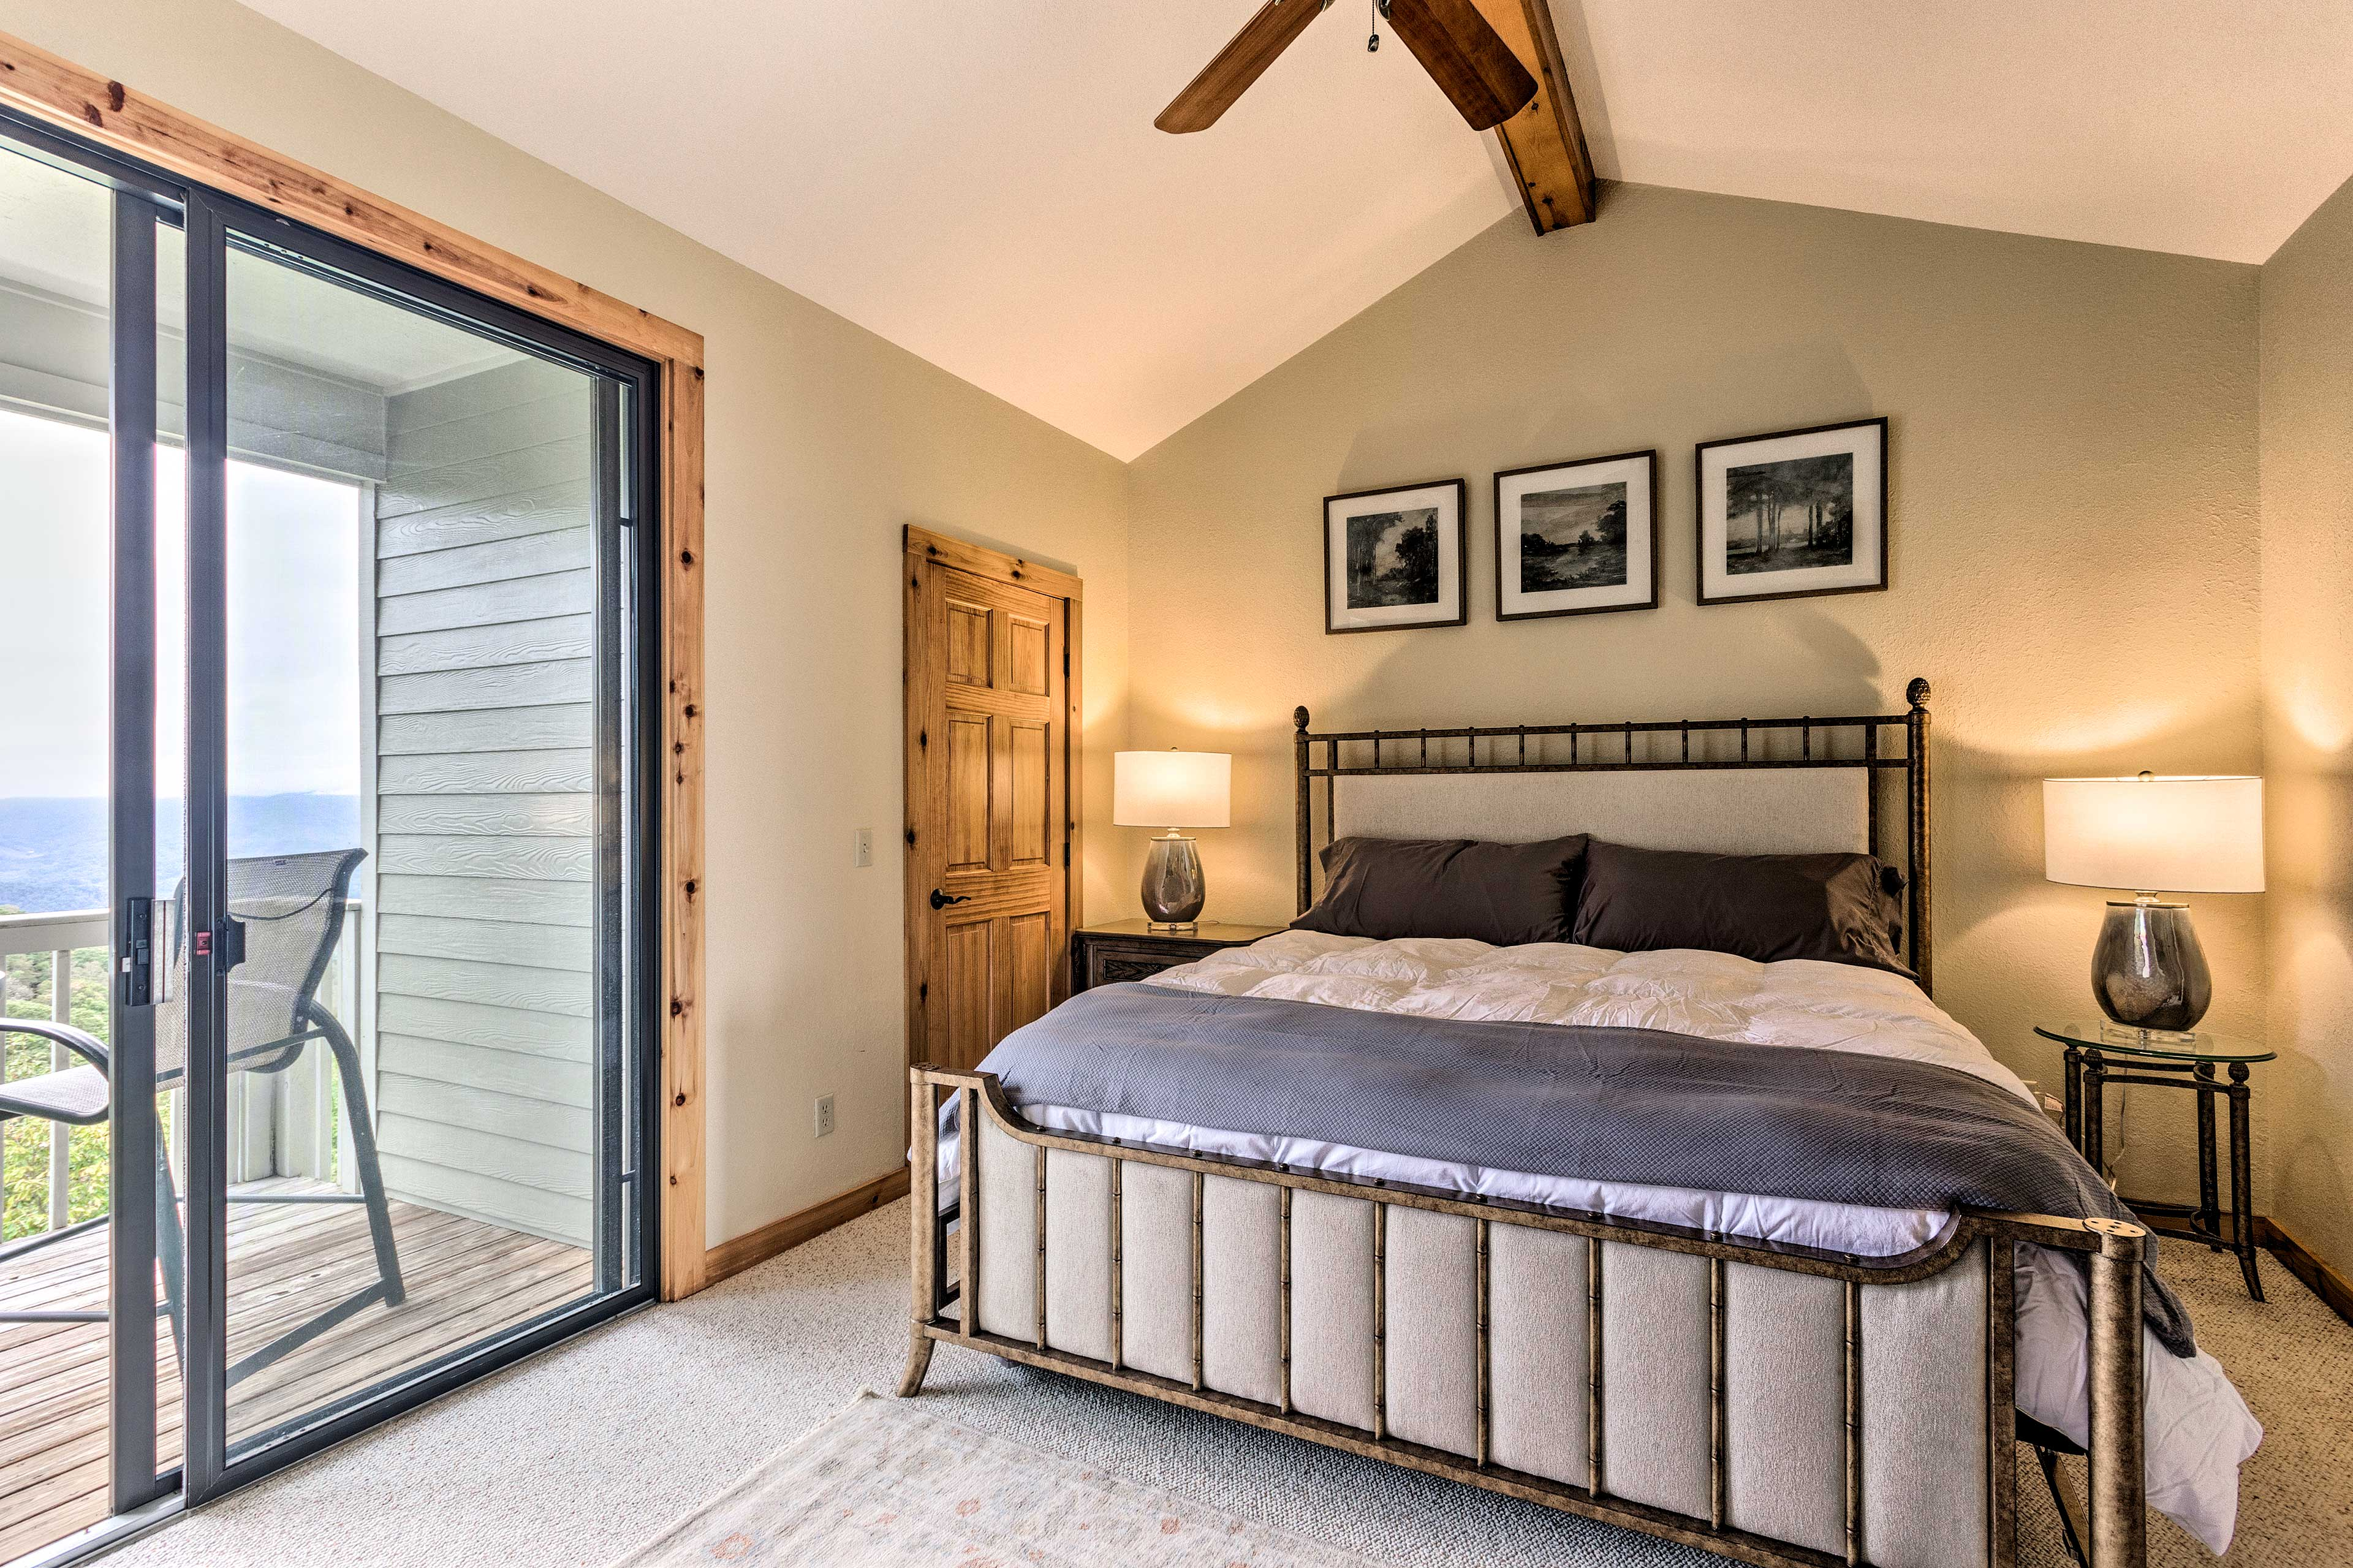 Claim the master suite's king-sized bed as your own.